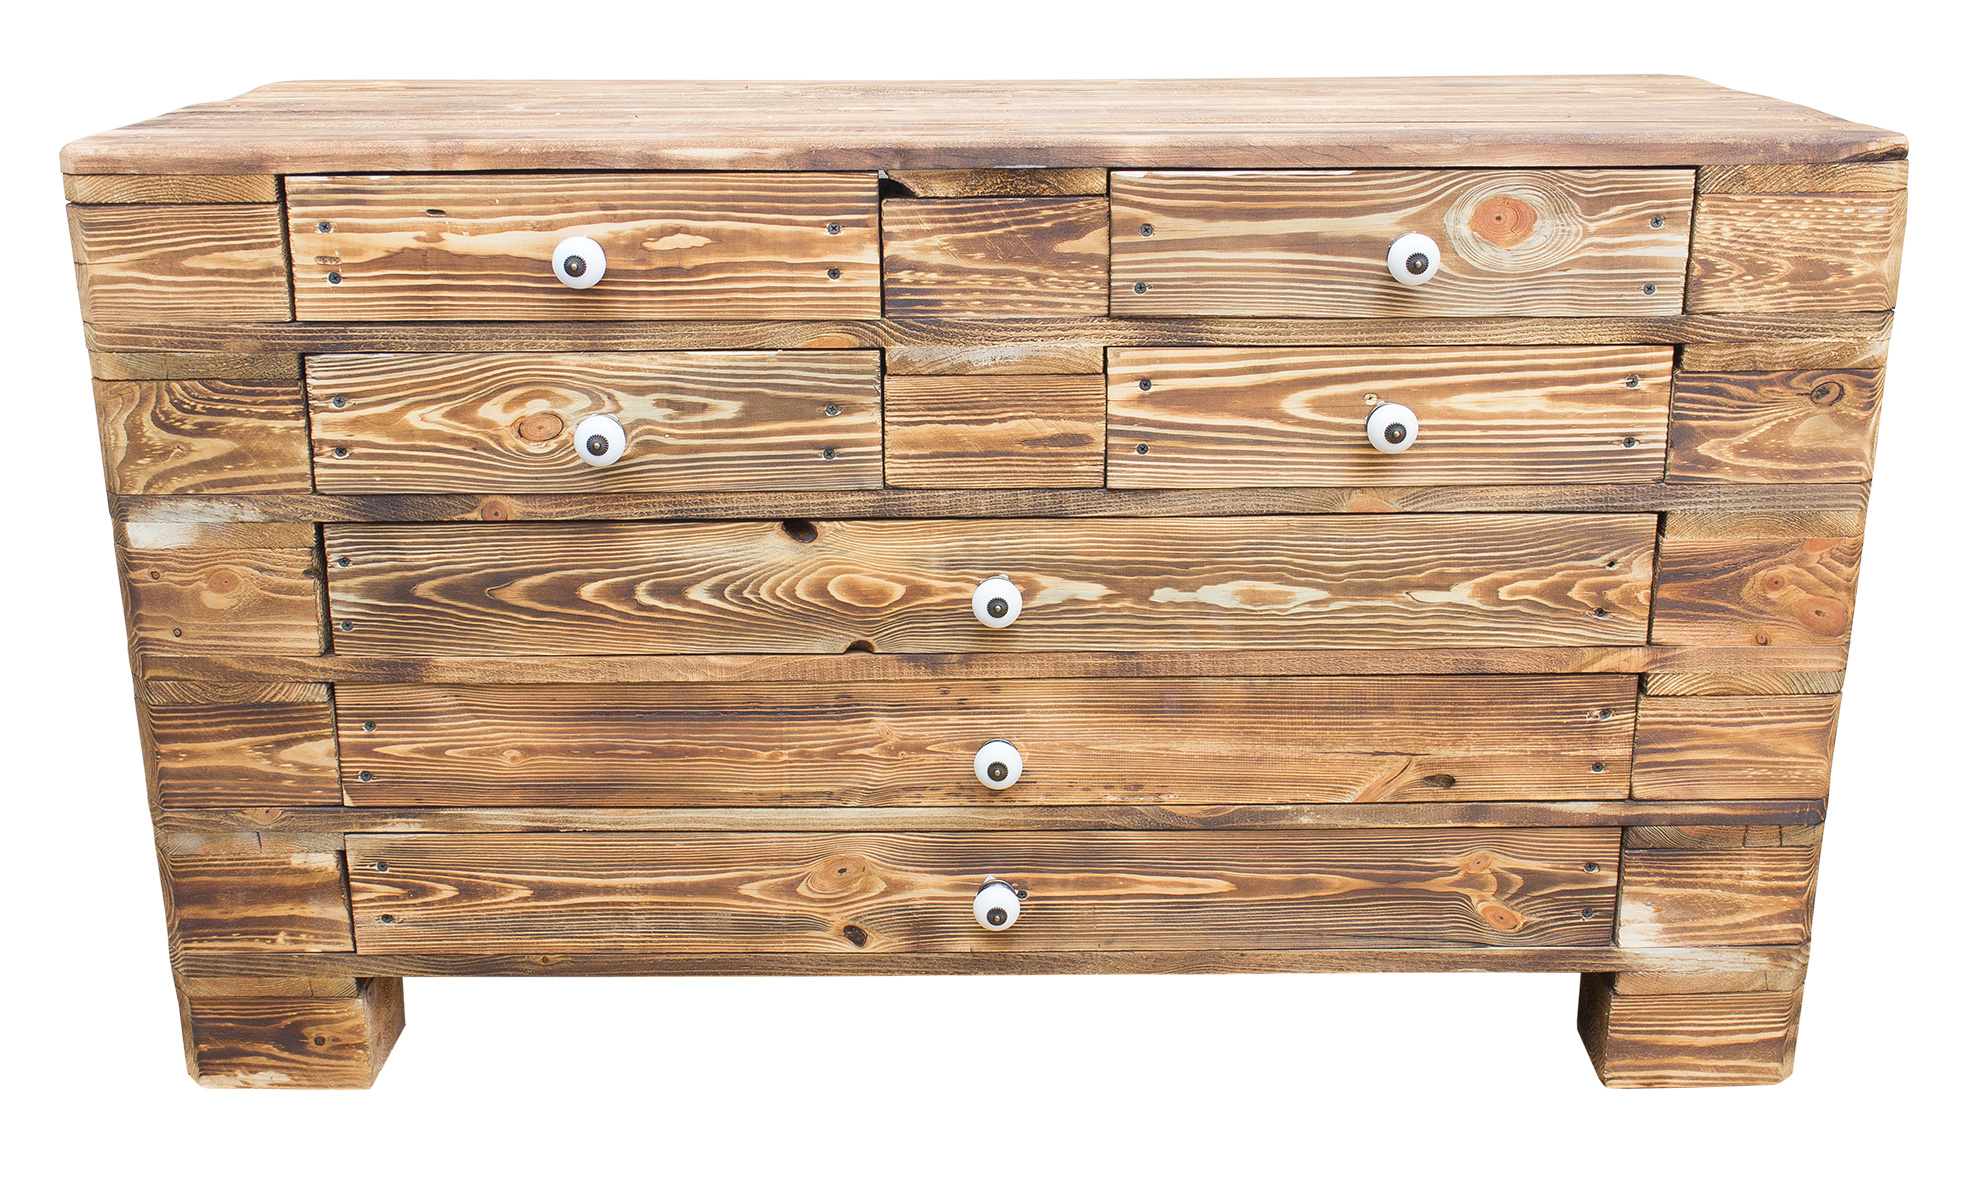 Weinkisten Shop pallet furniture vintage chest of drawers made of pallets in